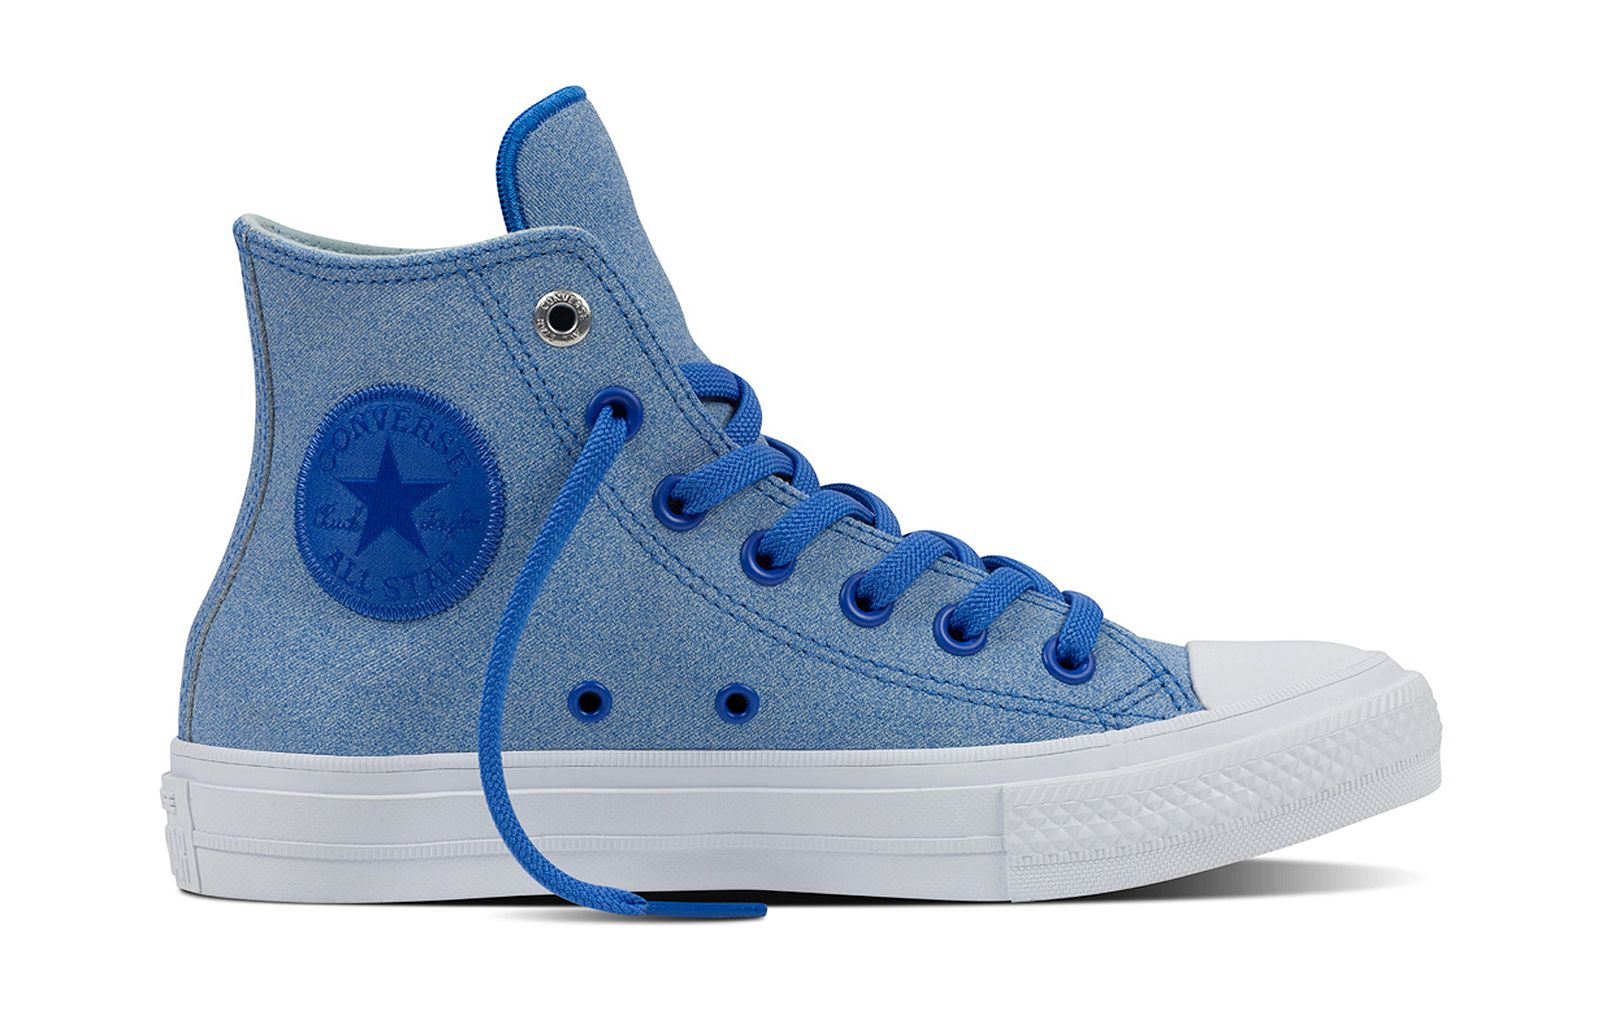 4a9bec7336e4a1 Chuck Taylor All Star II Two-Tone Leather